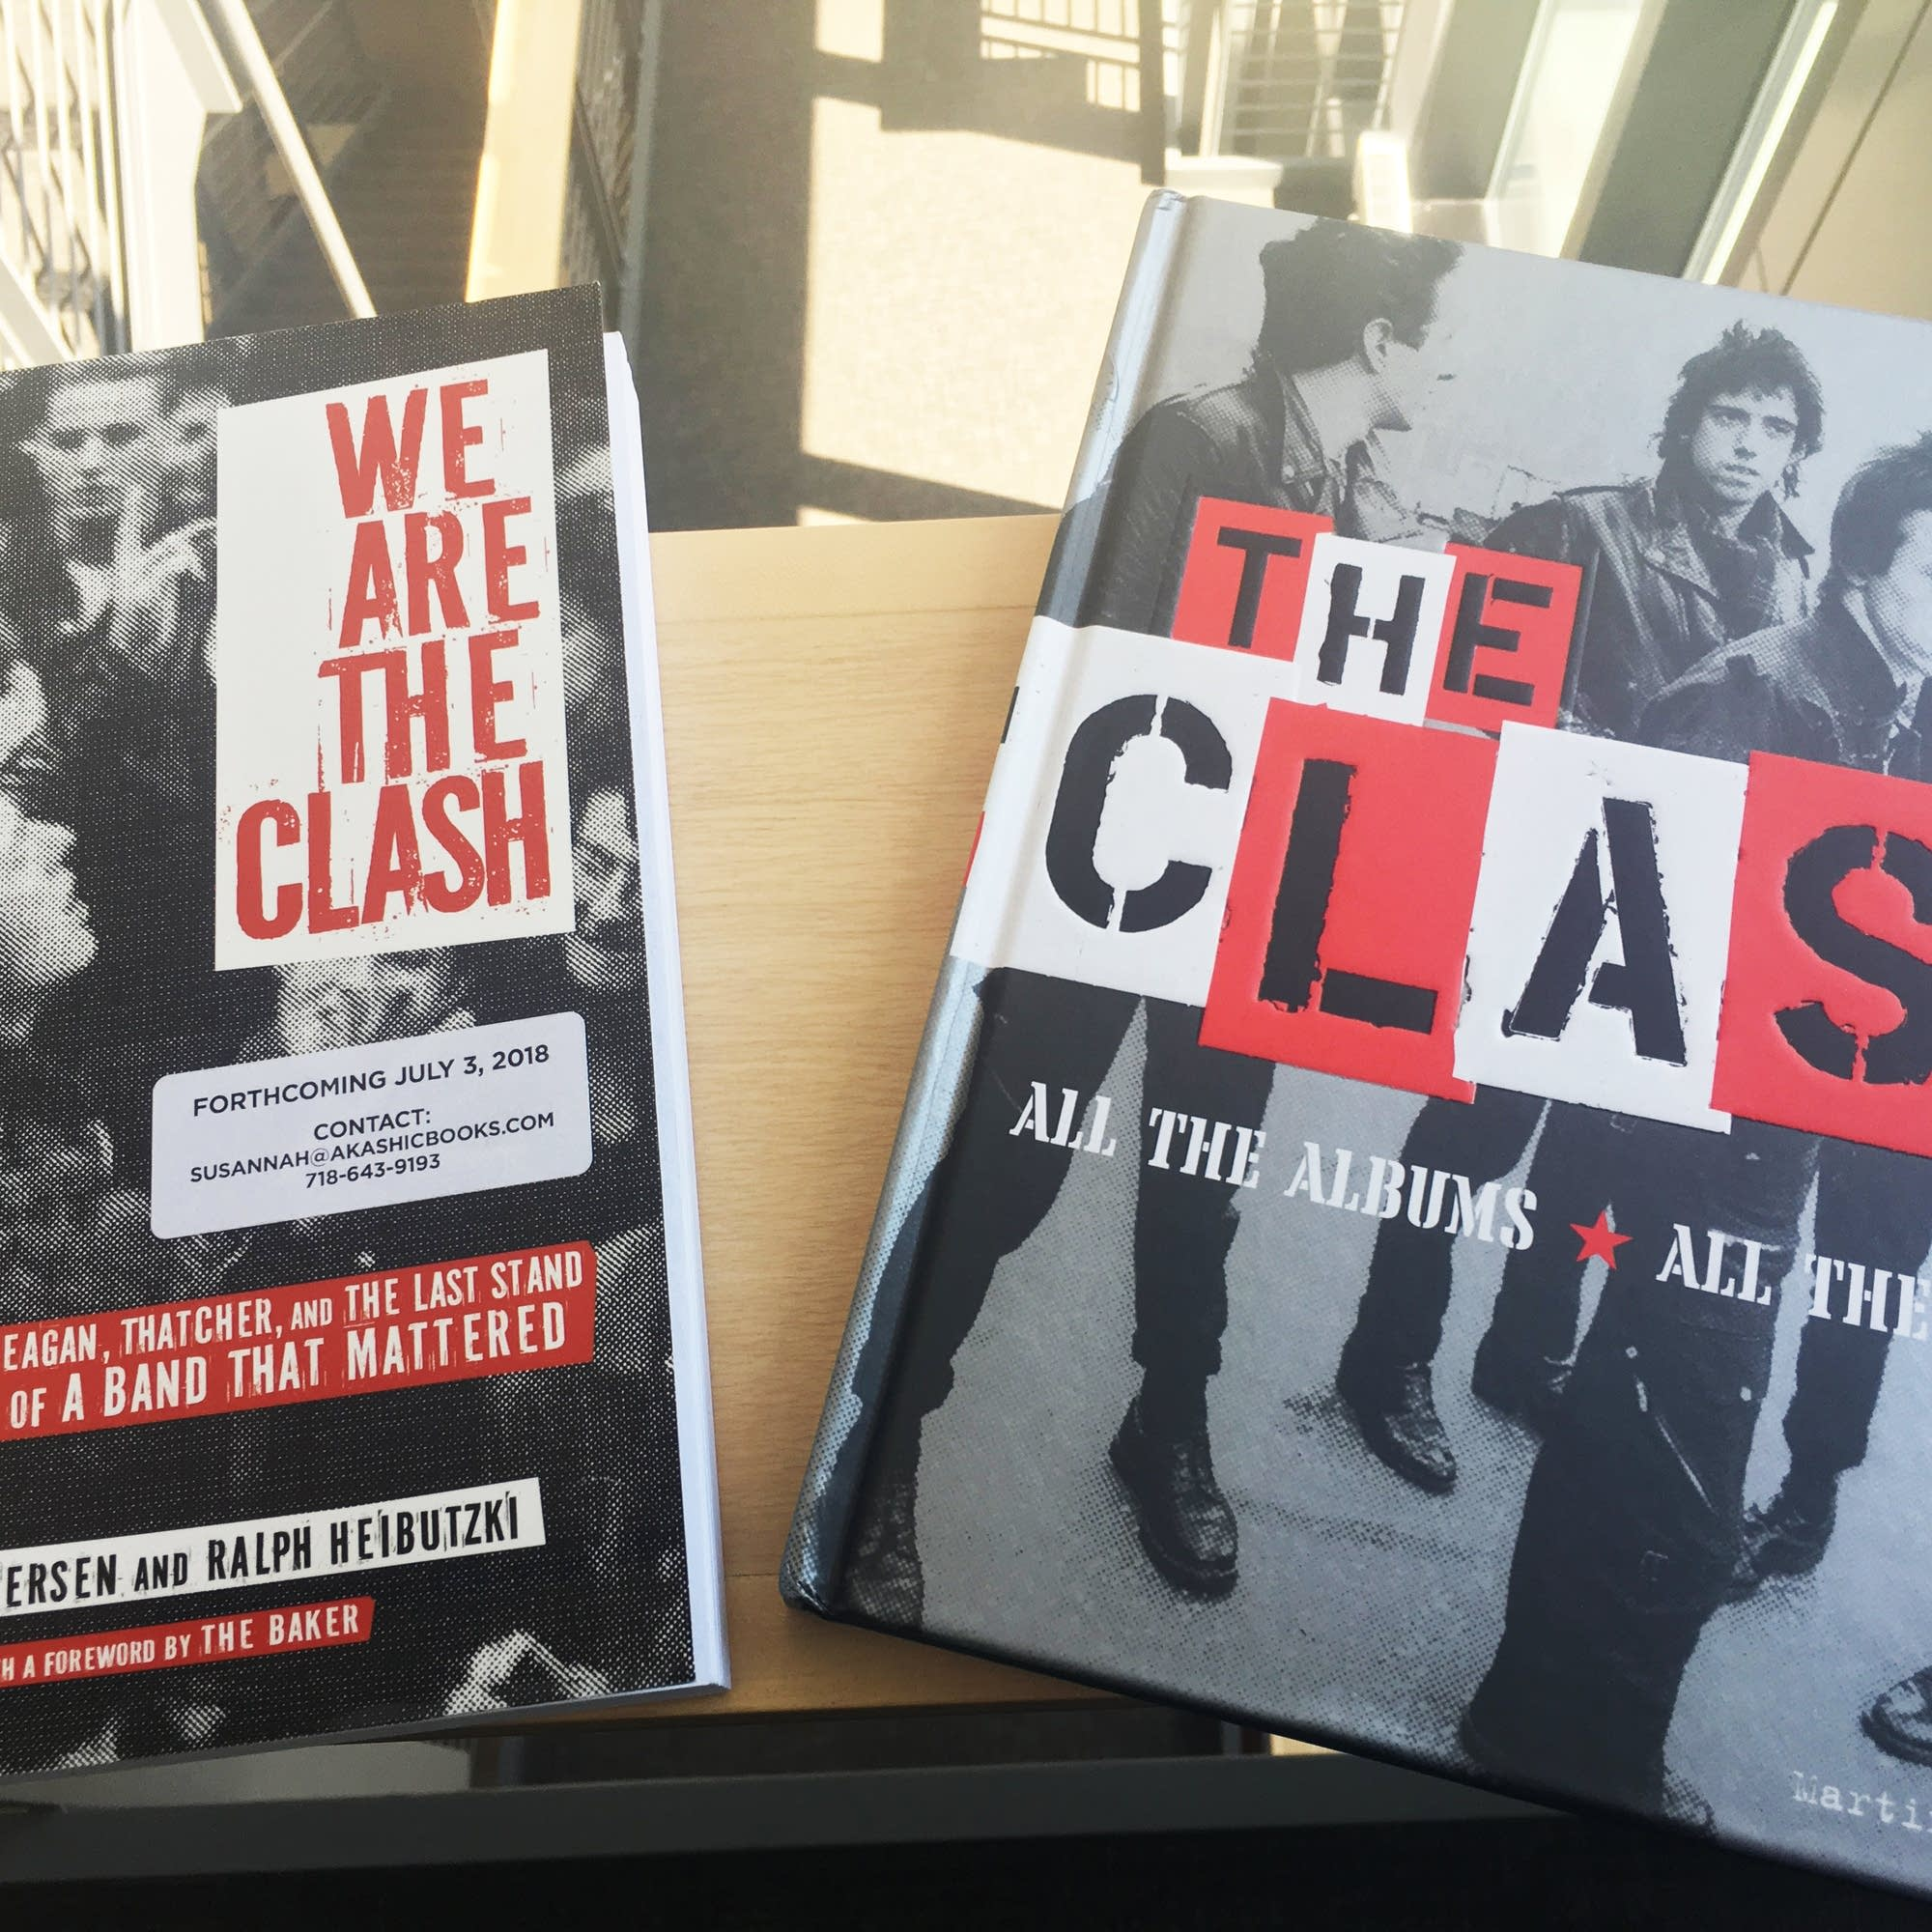 Two new books about the Clash.